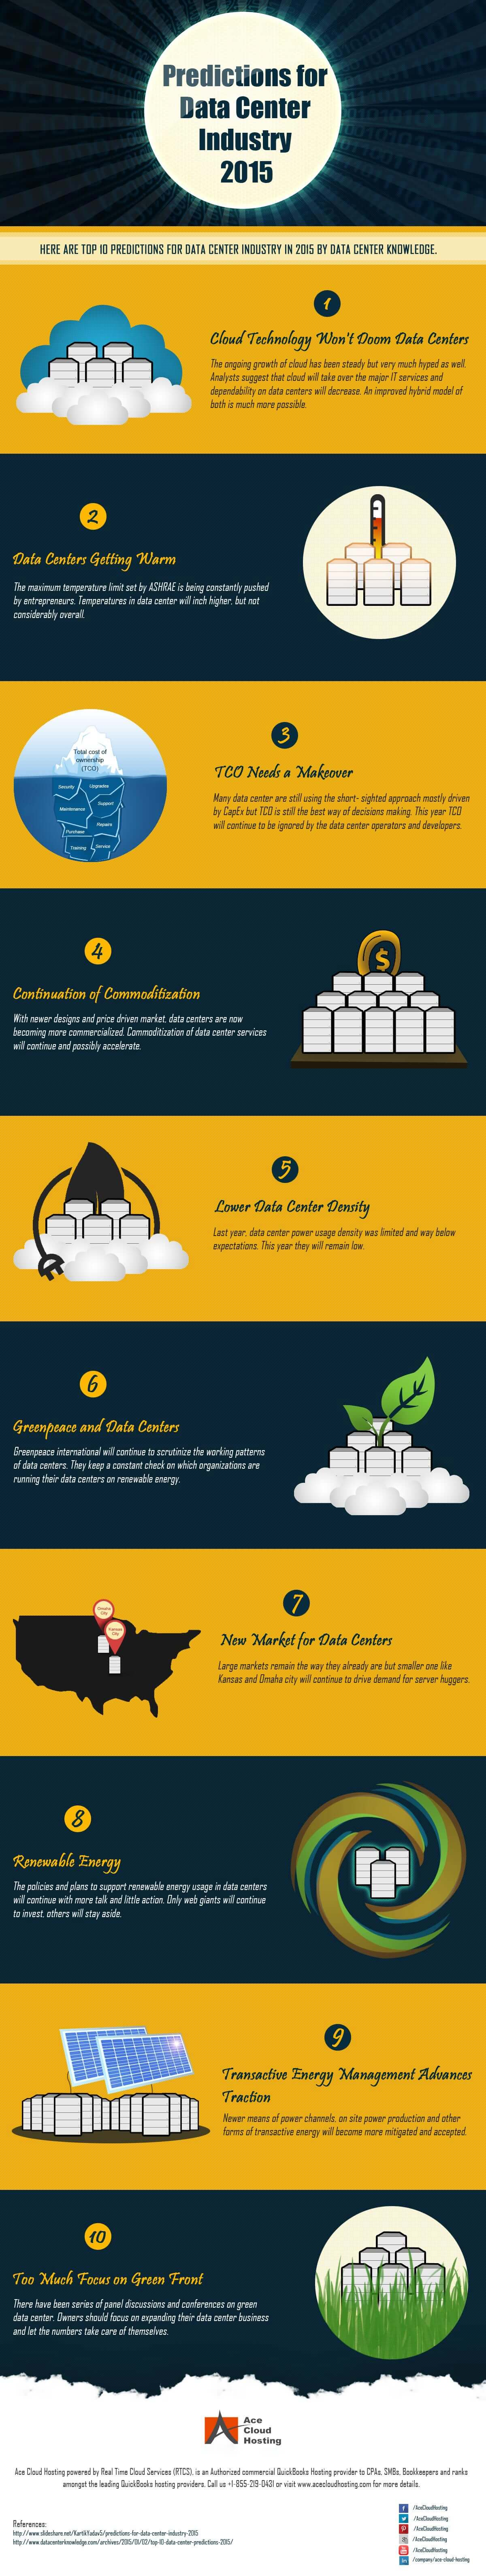 Predictions for Data Center Industry 2015 Infographic